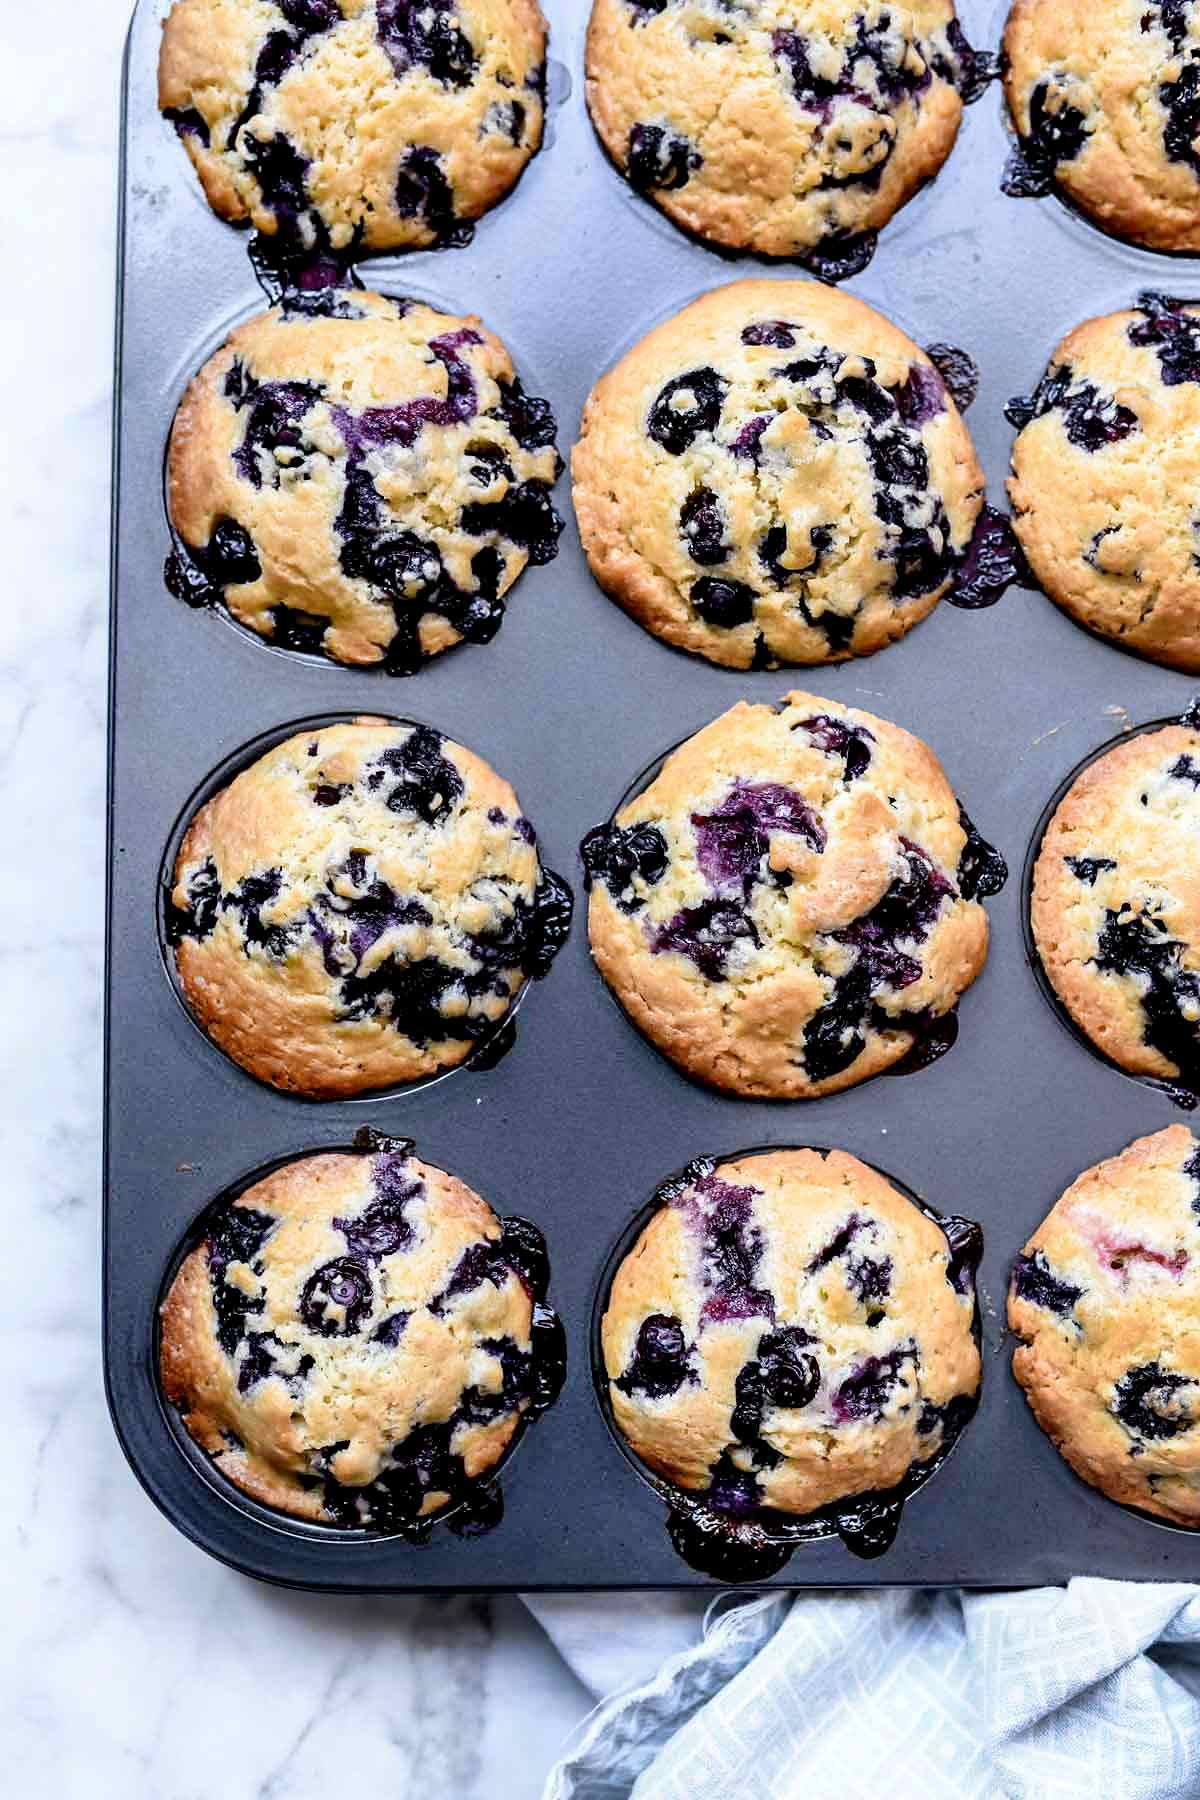 Homemade Blueberry Muffins (From Scratch!) | foodiecrush .com